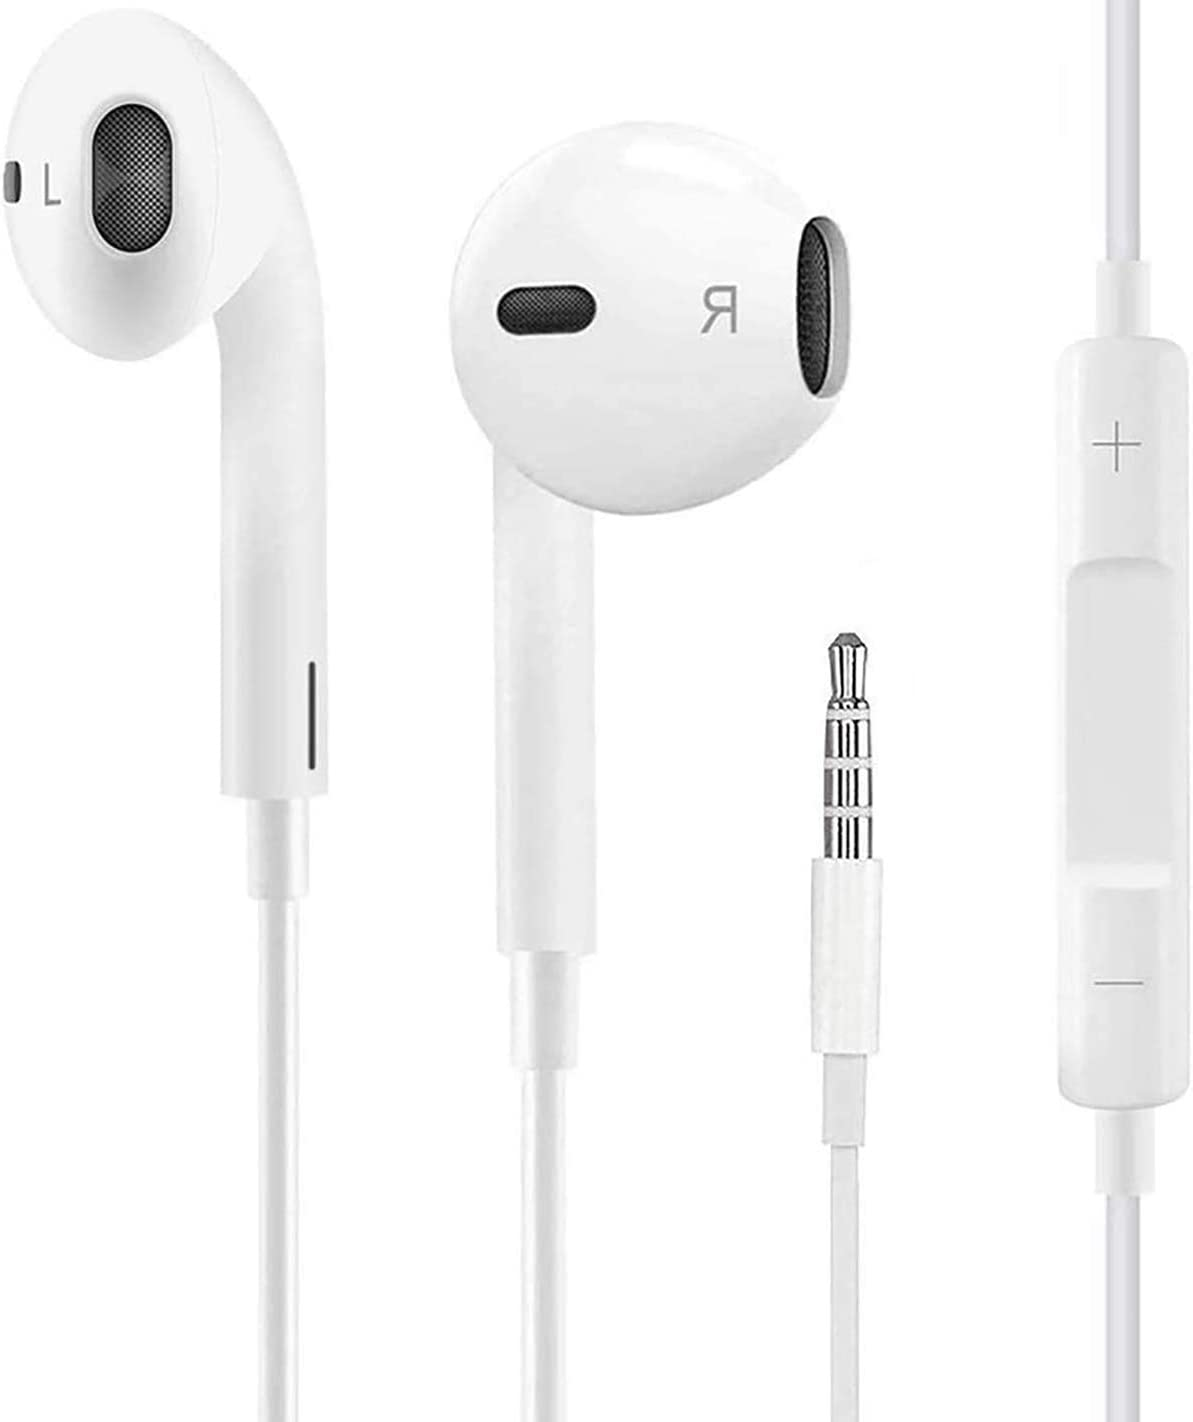 【2 Pack】 Earbuds/Earphones - Wired Headphones, 3.5mm in-Ear Wired Earbuds with Built-in Microphone & Volume Control Compatible with iPhone 6s